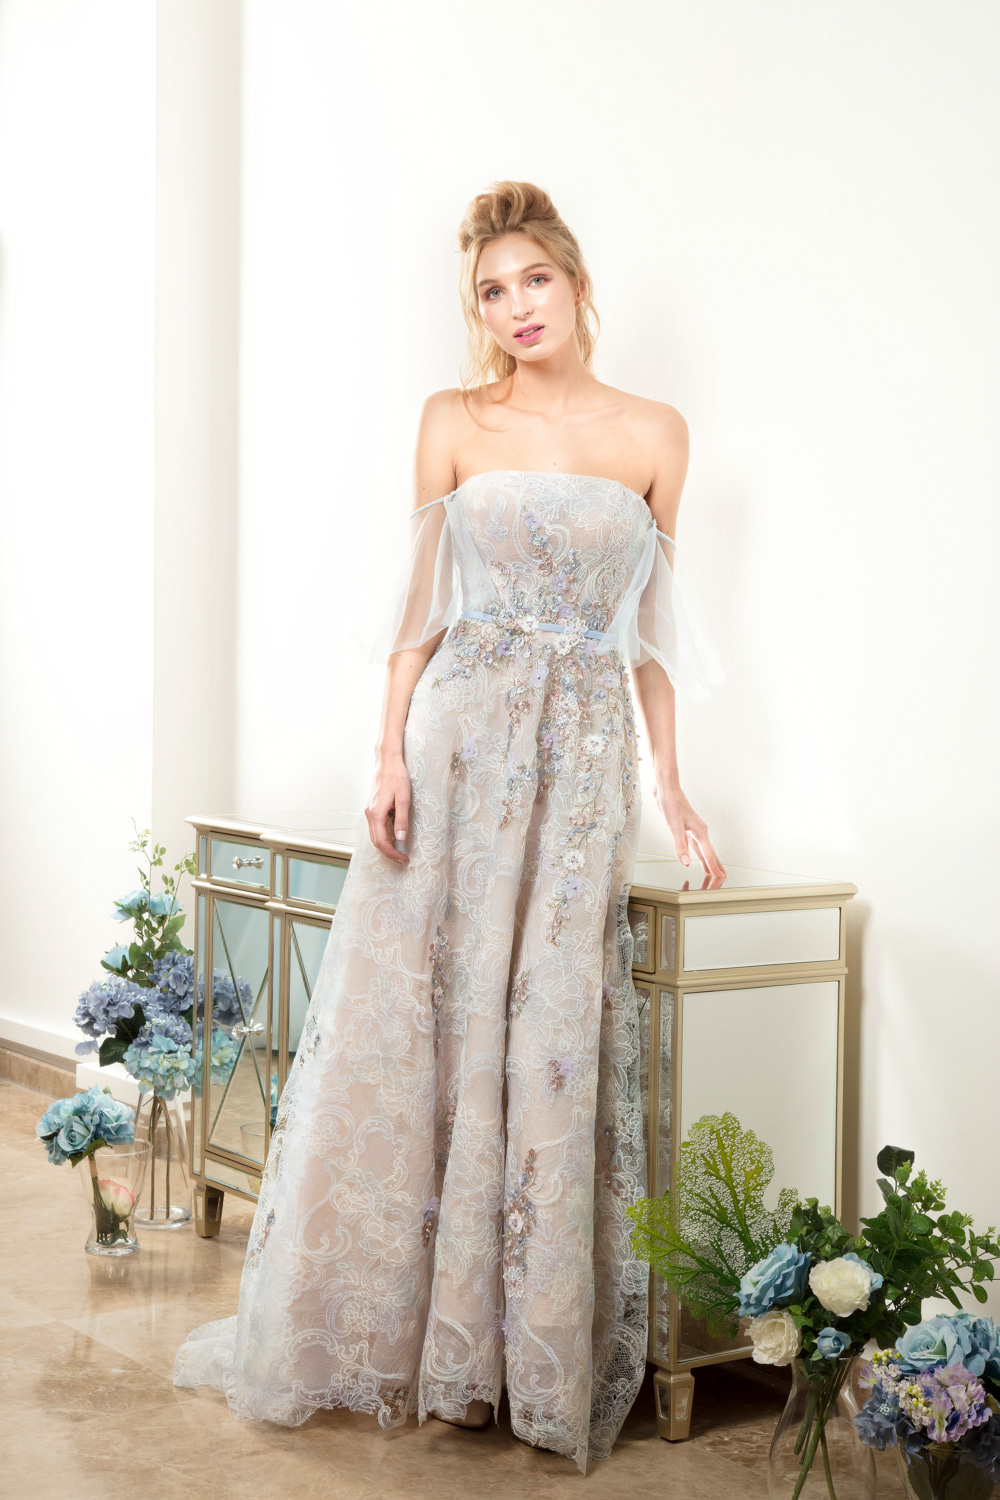 Off the shoulder evening gown by CCM Wedding